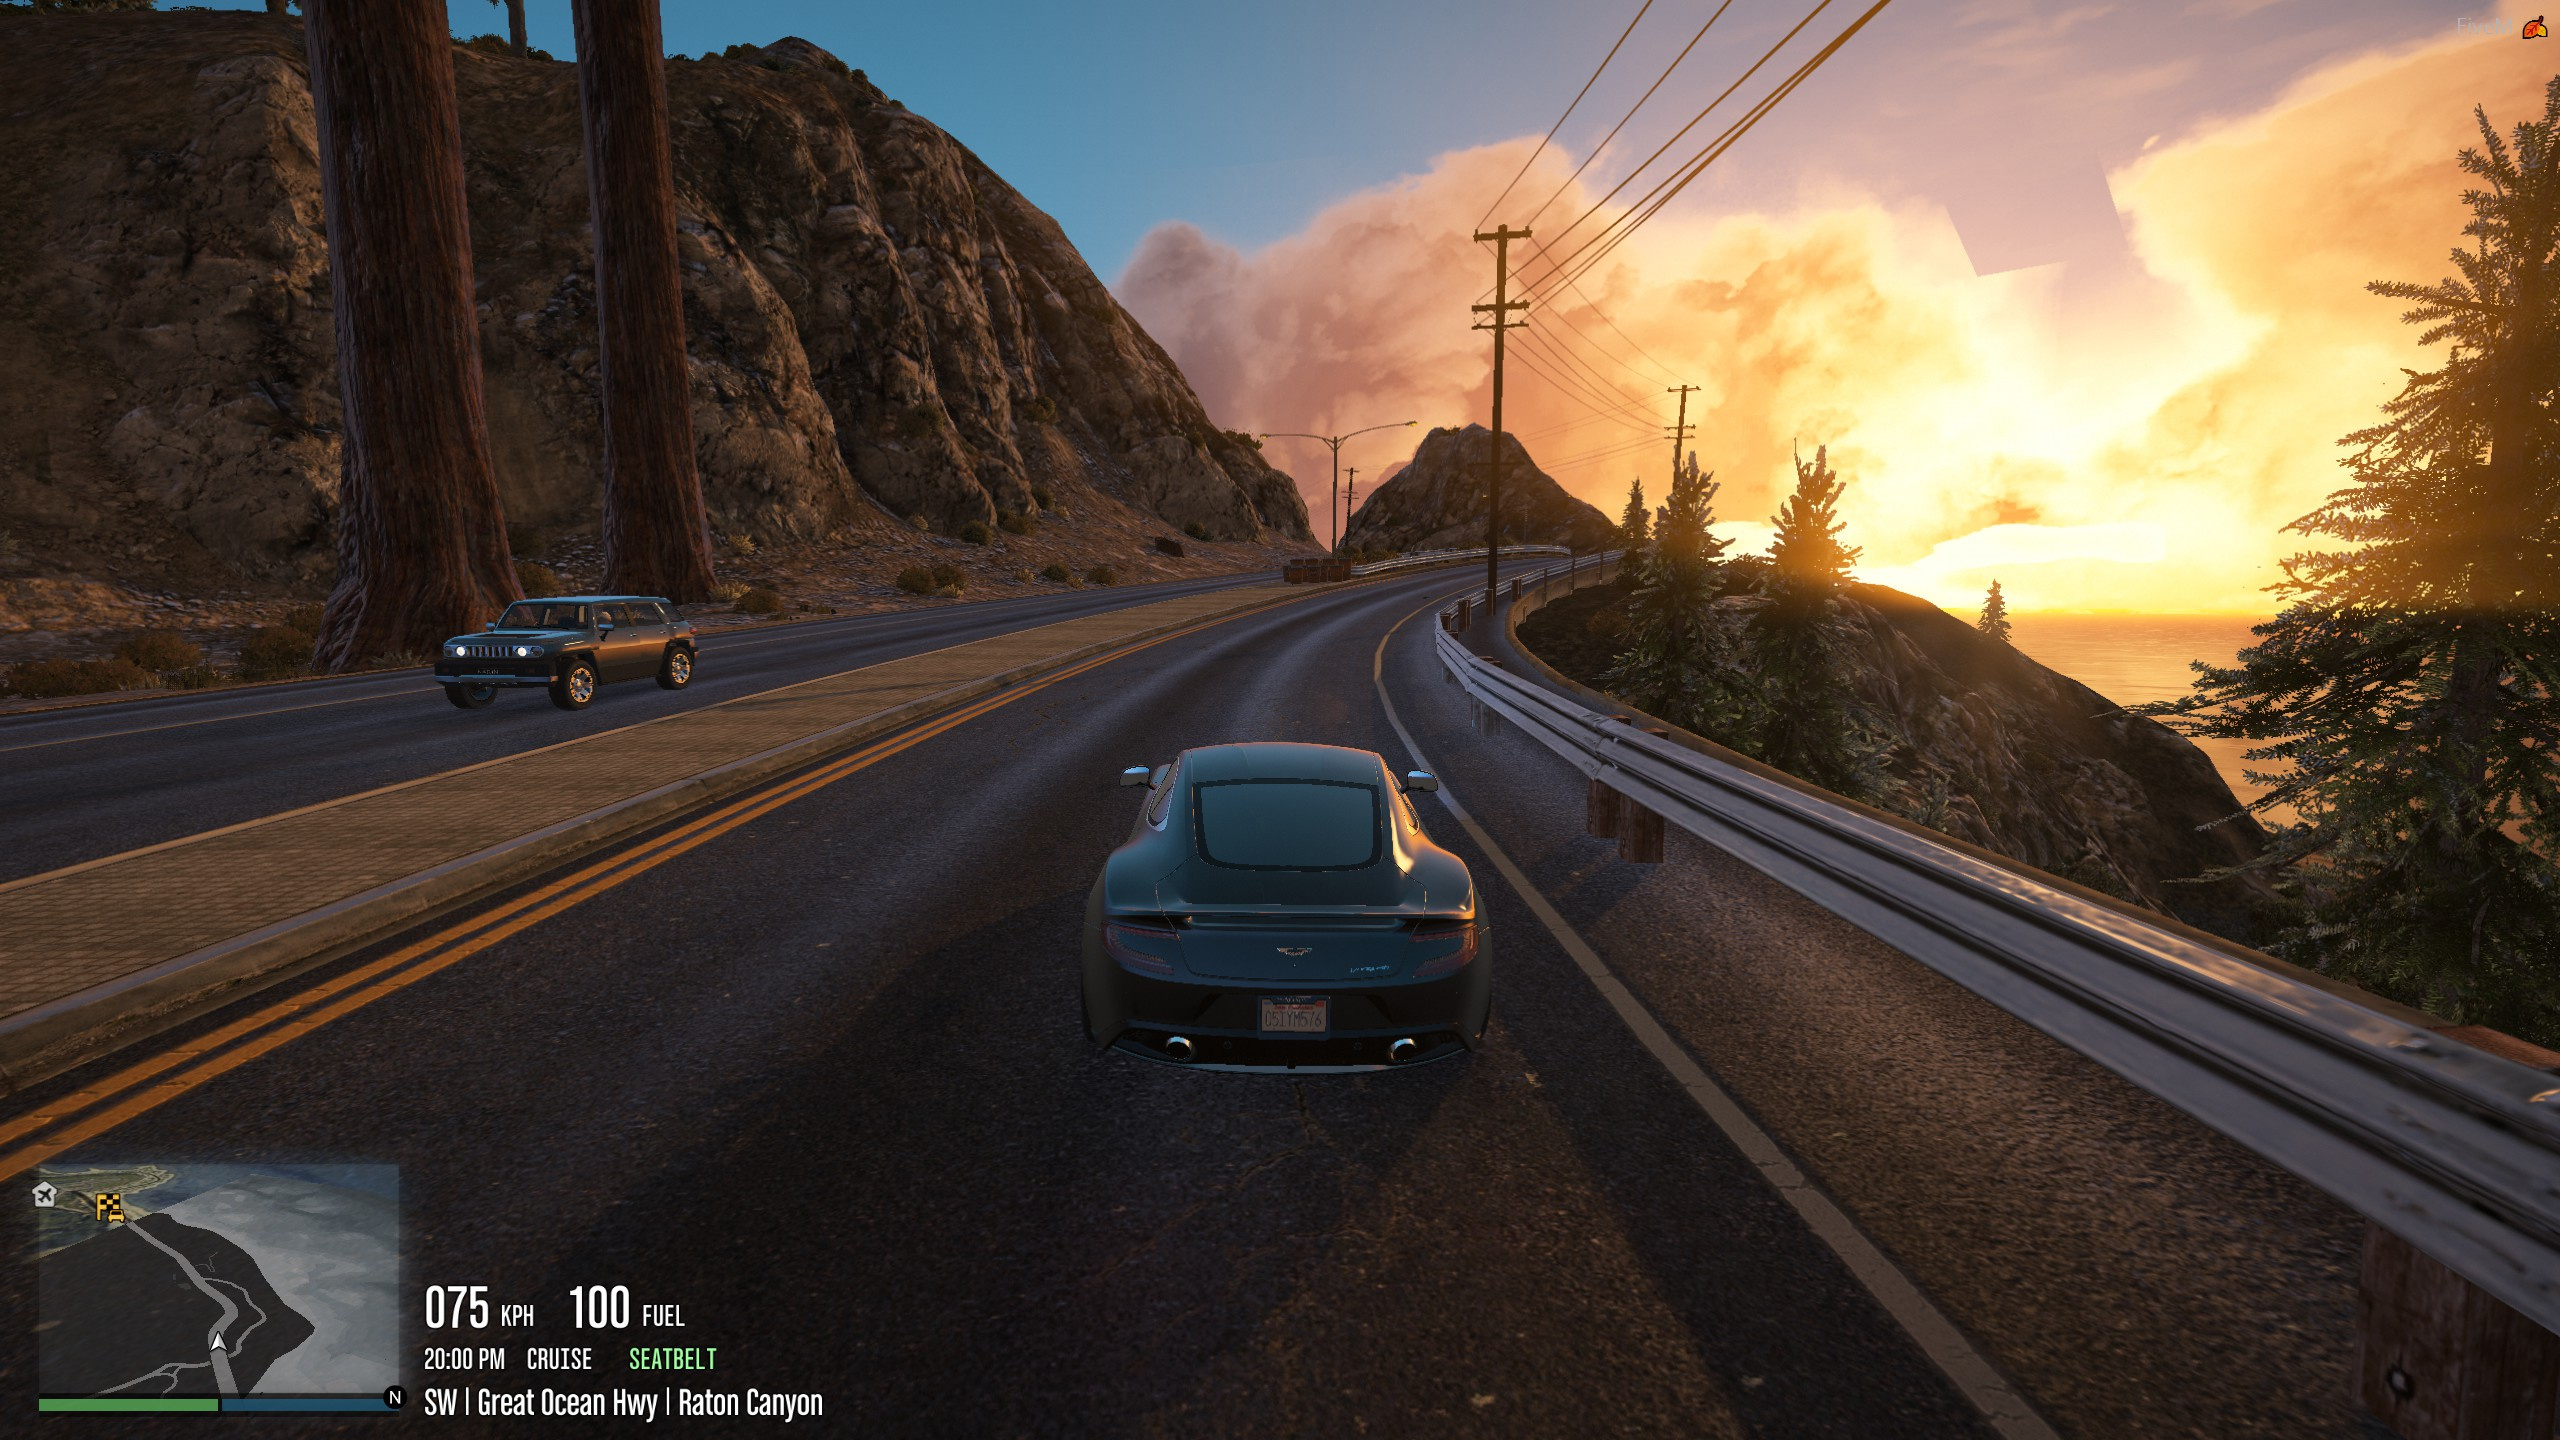 Help] Has anyone seen this HUD? NoPixel HUD! - Discussion